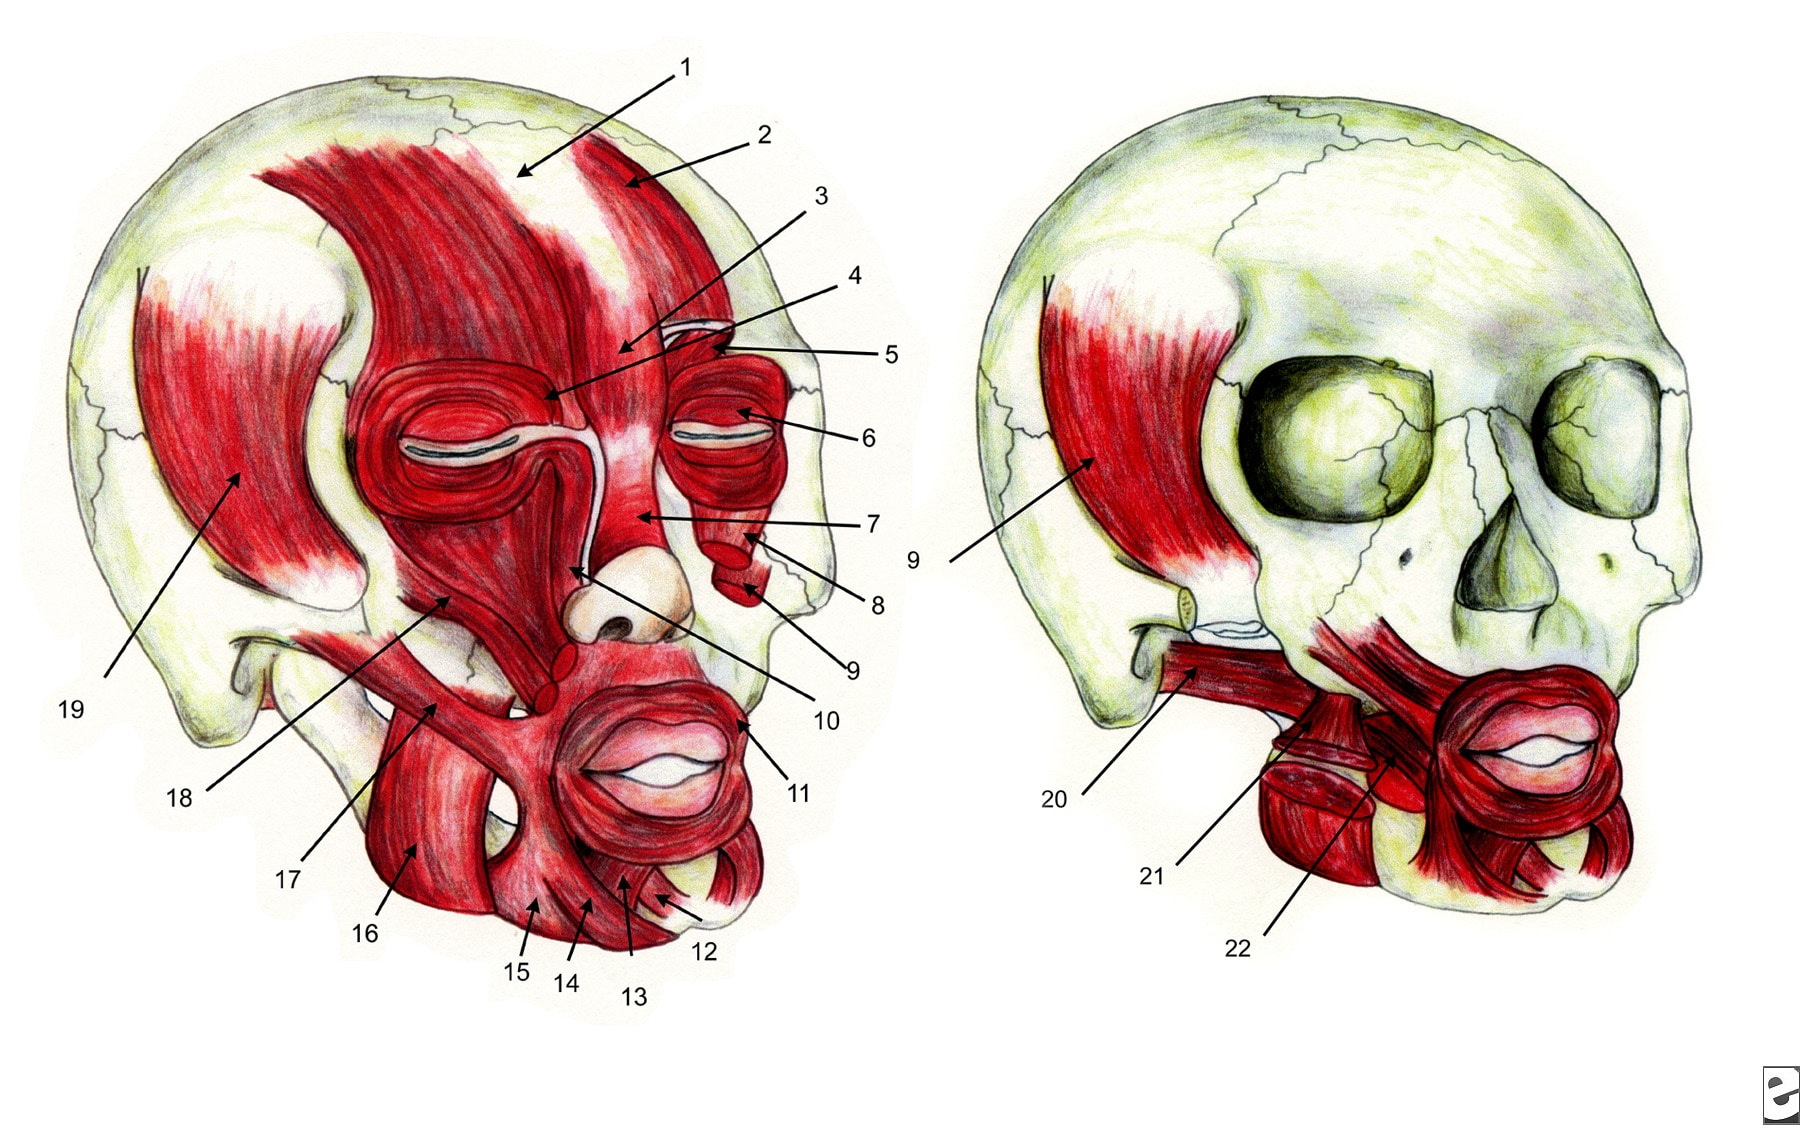 Zygomaticus Major And Minor Origin And Insertion Facial muscles 1    Zygomaticus Major And Minor Origin And Insertion